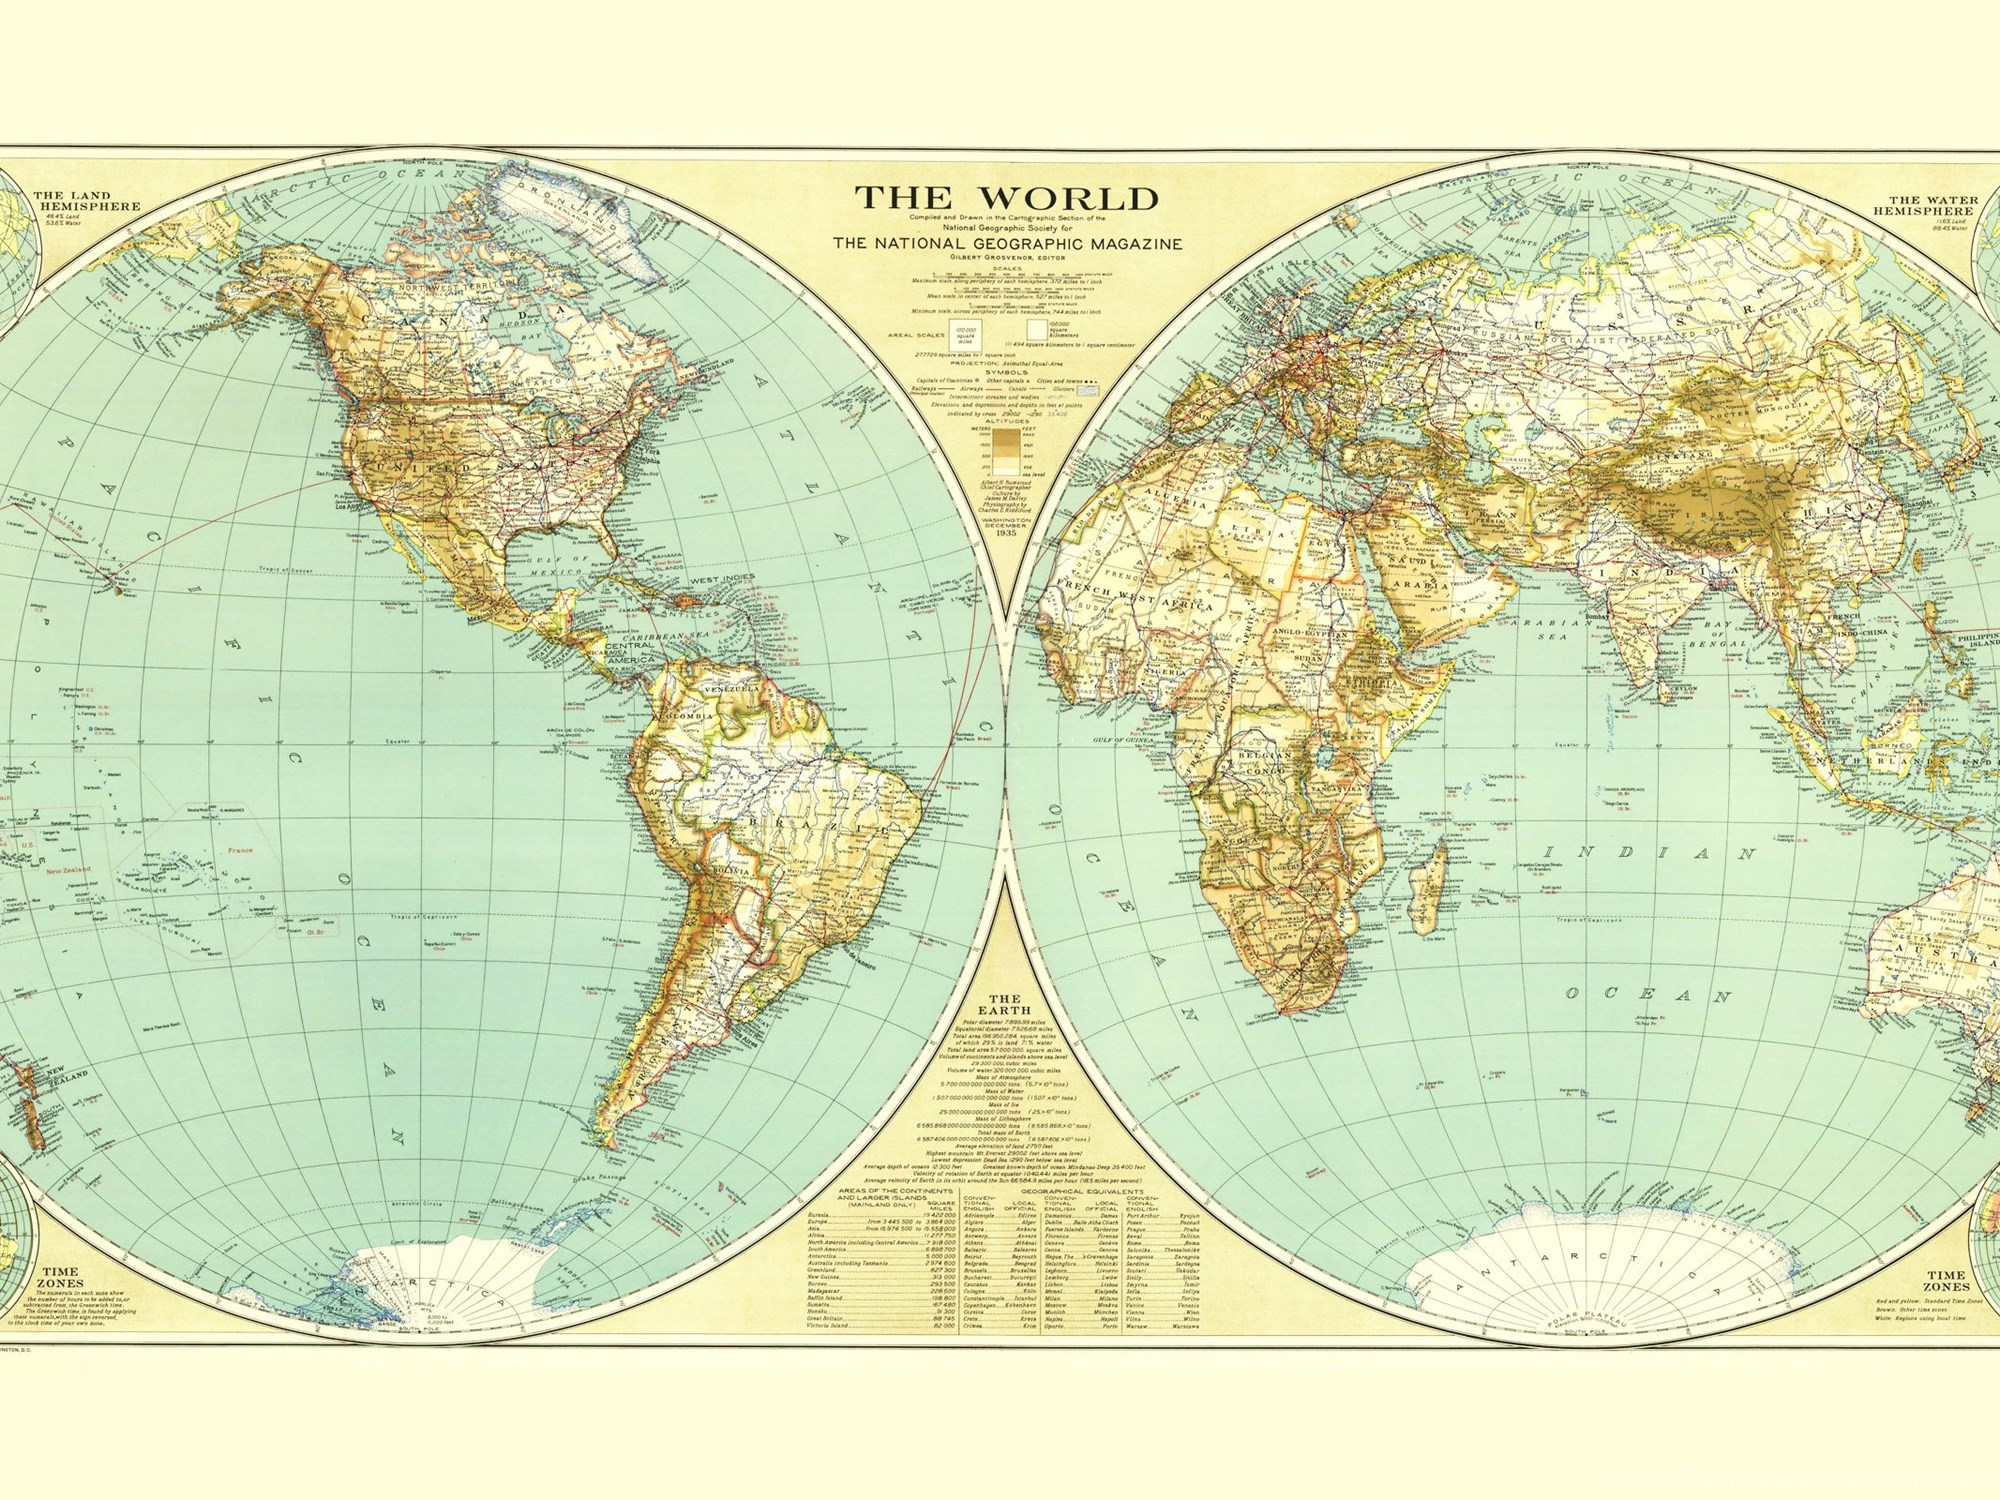 World Map Poster Large 2560x1600 Hd Wallpapers And Free Stock